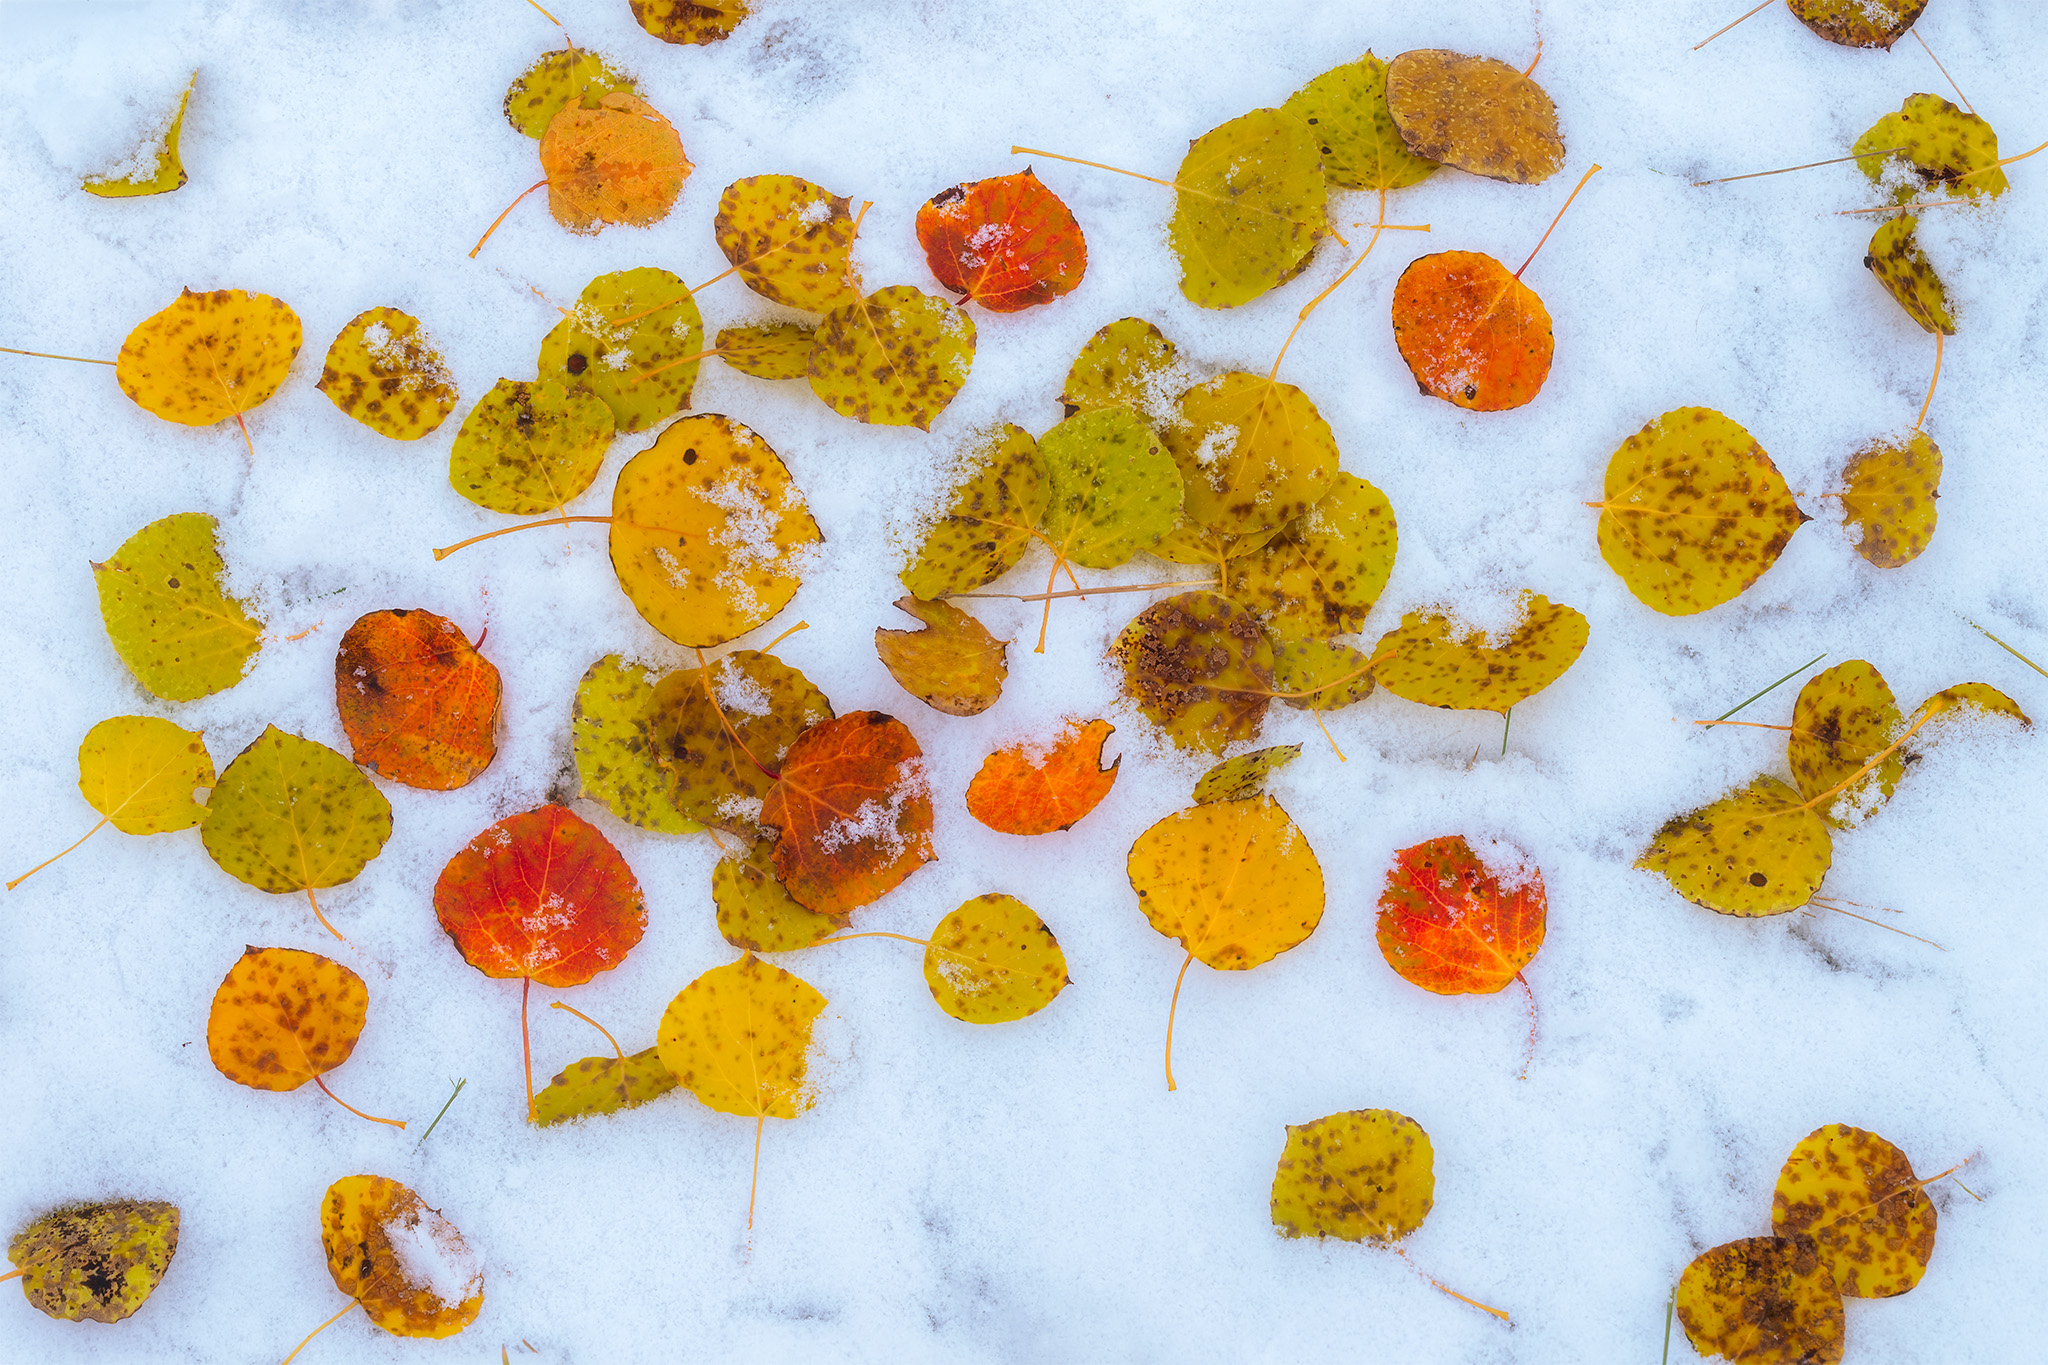 An abstract photograph of aspen leaves on a fresh bed of snow in Saskatchewan